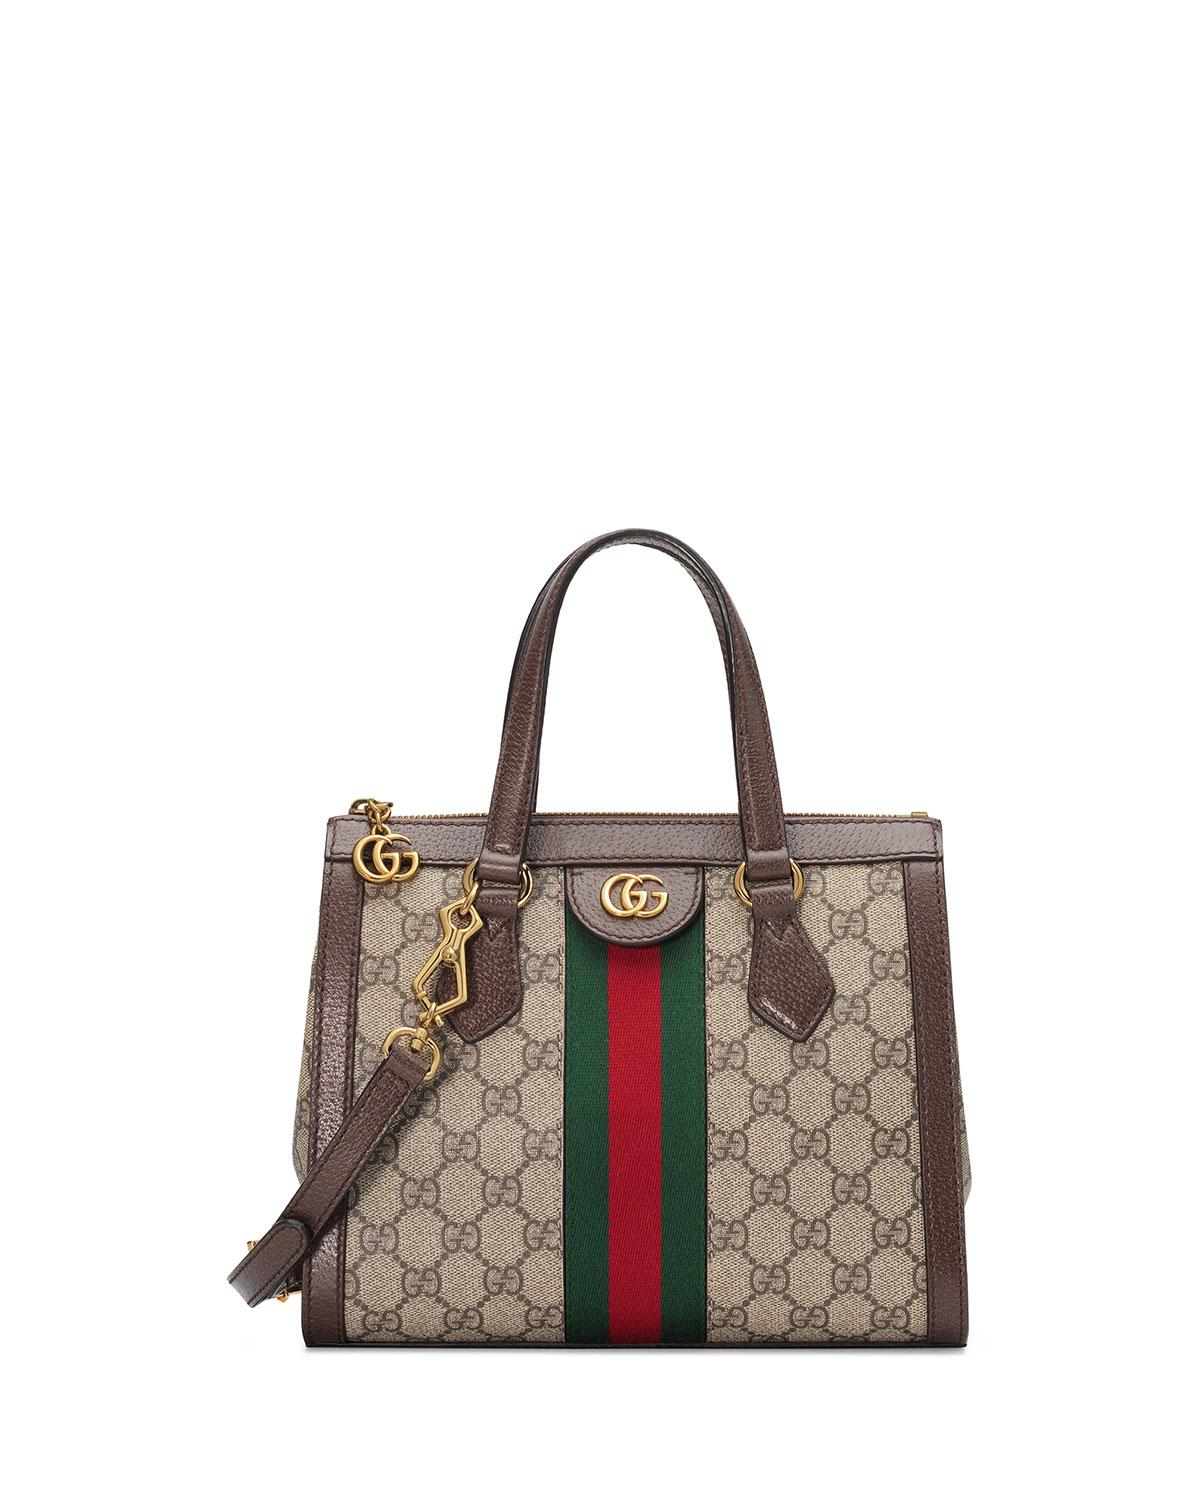 636717d54af Lyst - Gucci Ophidia Small GG Tote Bag in Natural - Save 17%